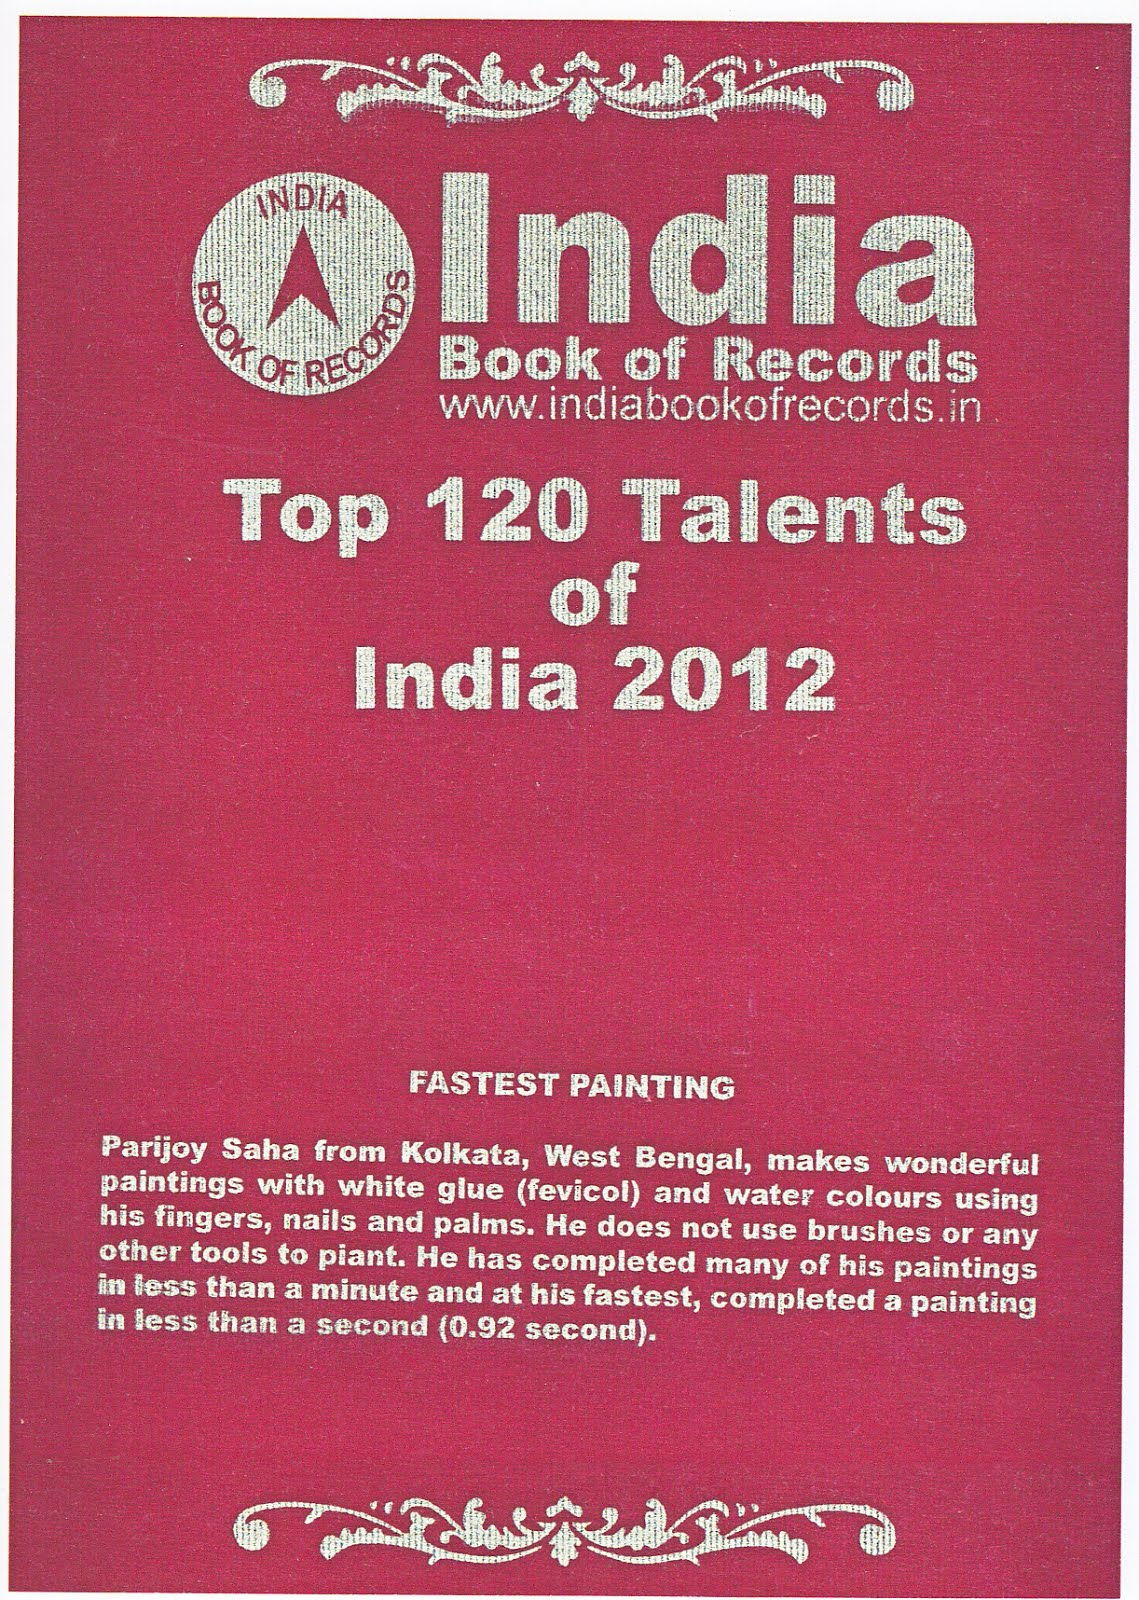 Included in the Top 120 Talents of the Nation